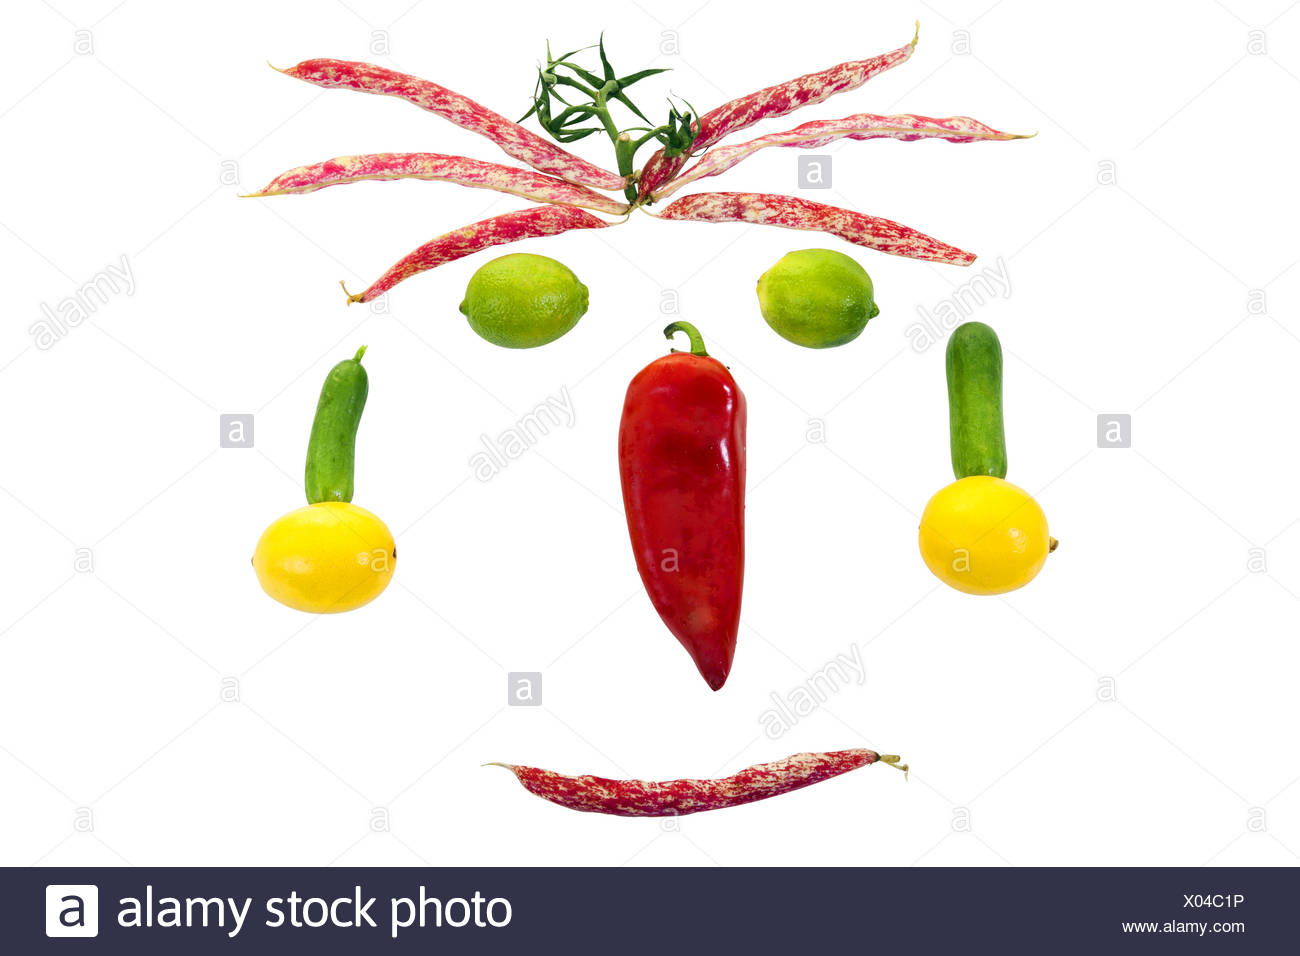 I'm Eating And Happy - Stock Image